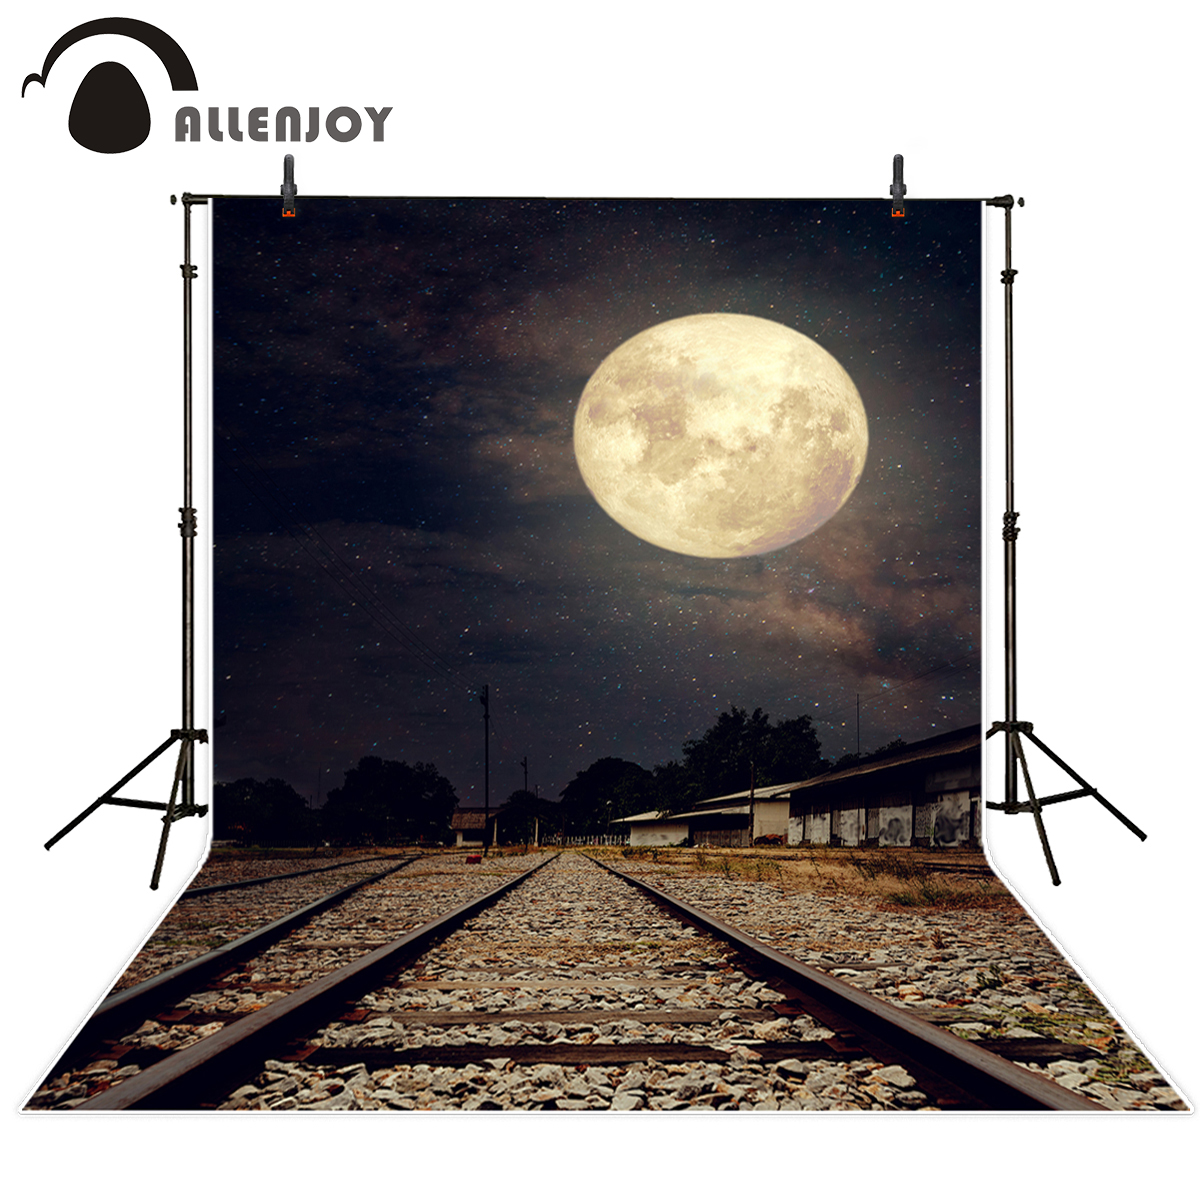 Allenjoy backdrop for photo studio railway train glitter moon sky night photobooth background photo prop